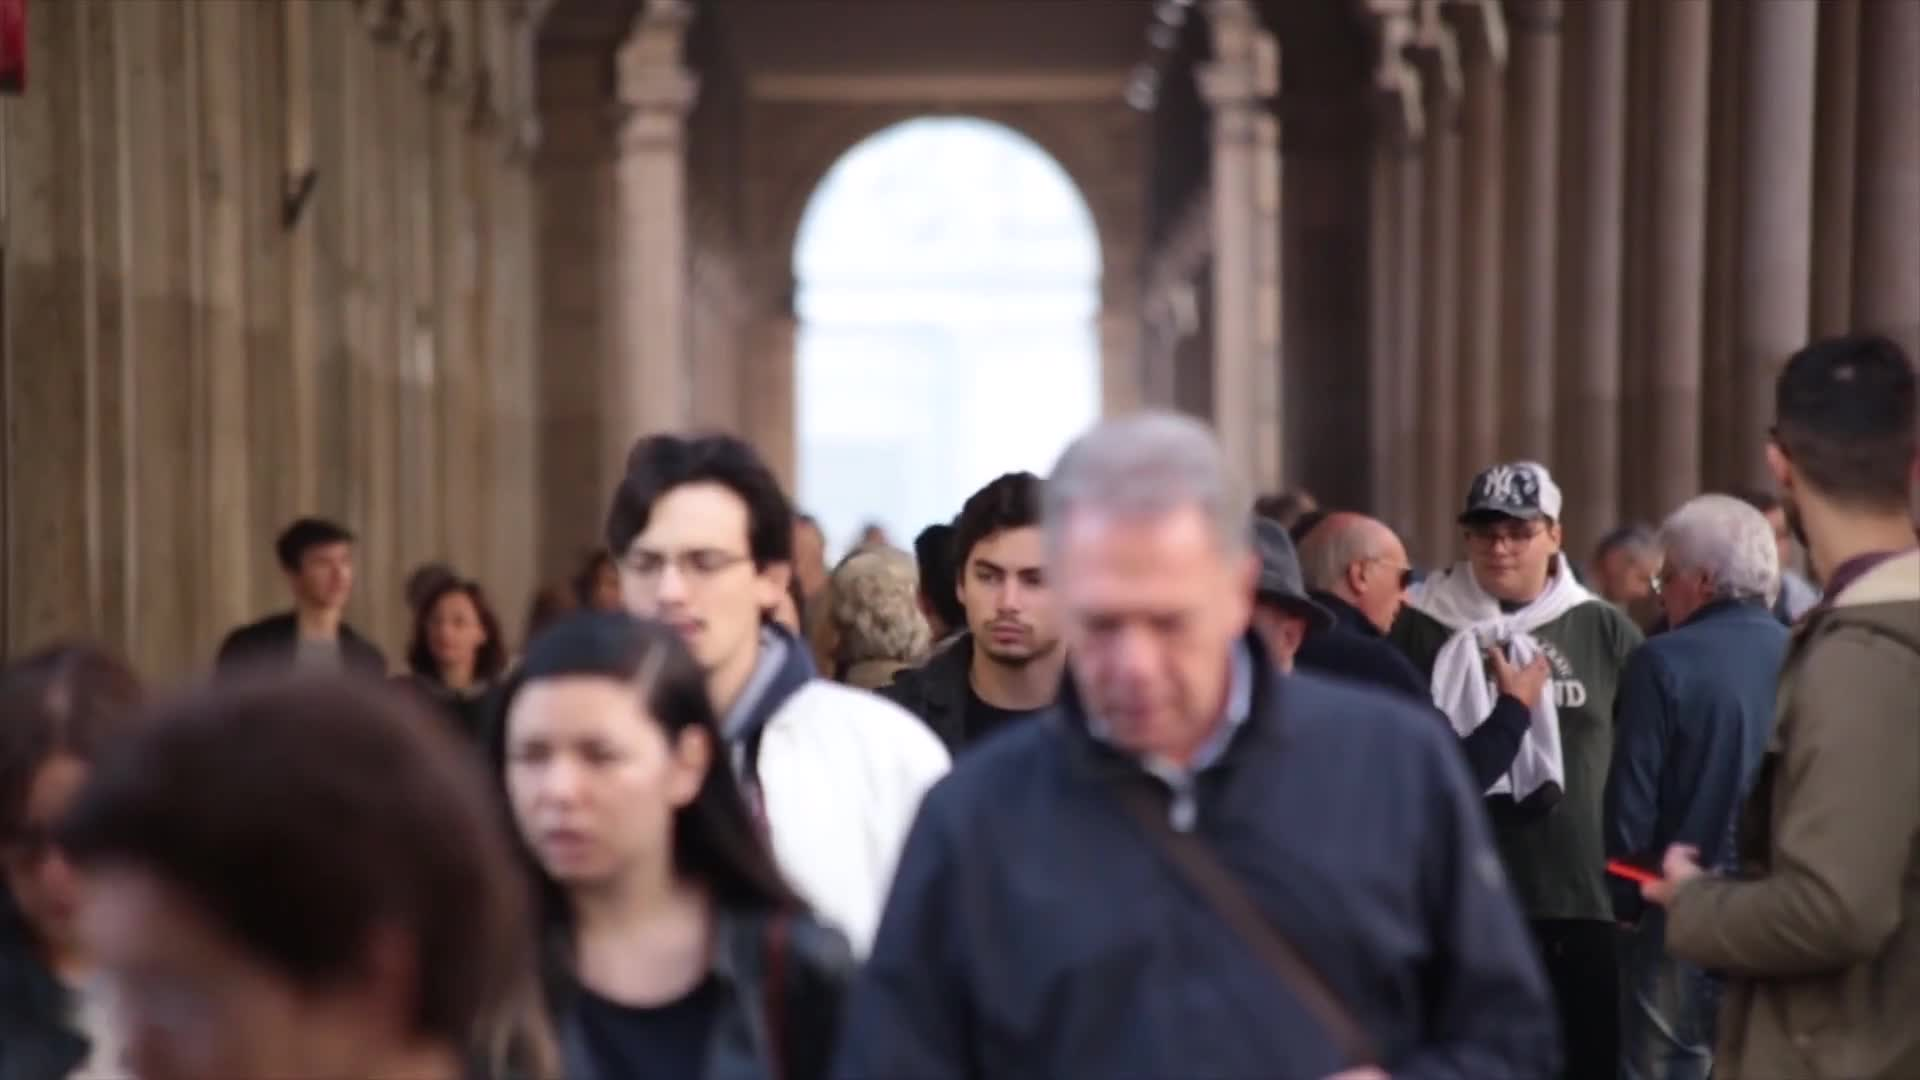 Video of people walking